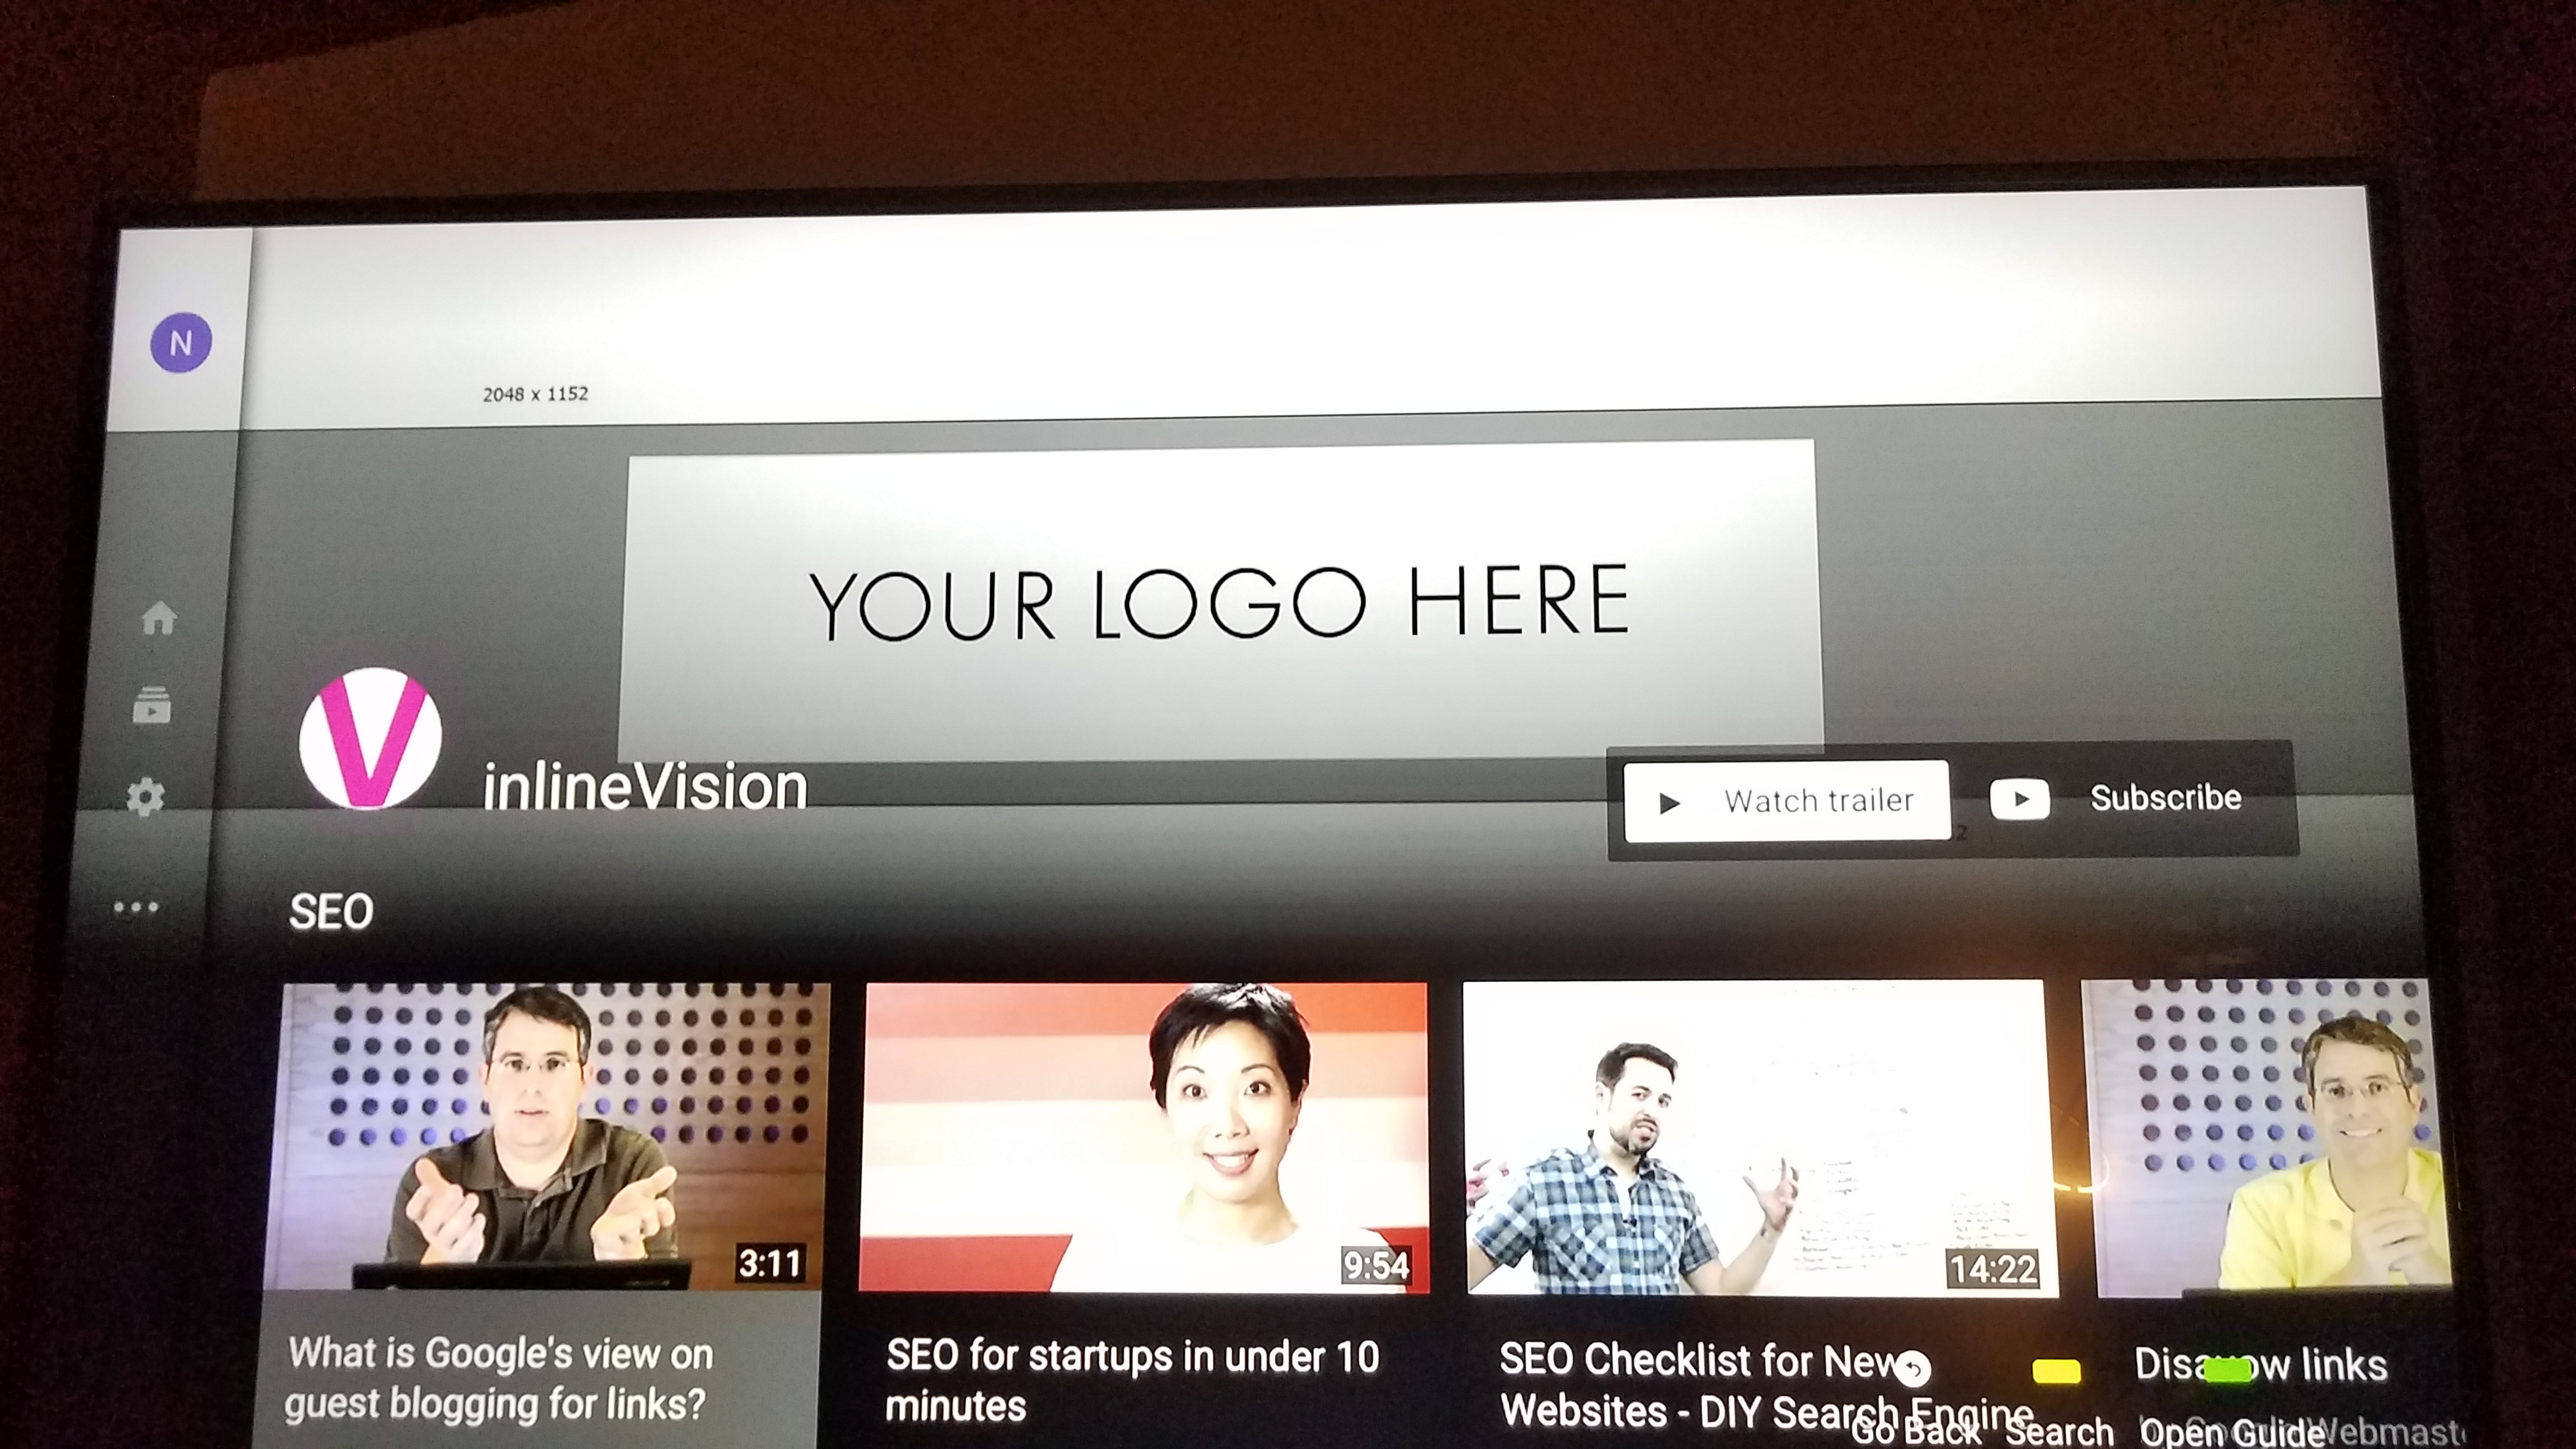 Youtube Channel Art Size 2120x1152 Smart Tv Inlinevision Web